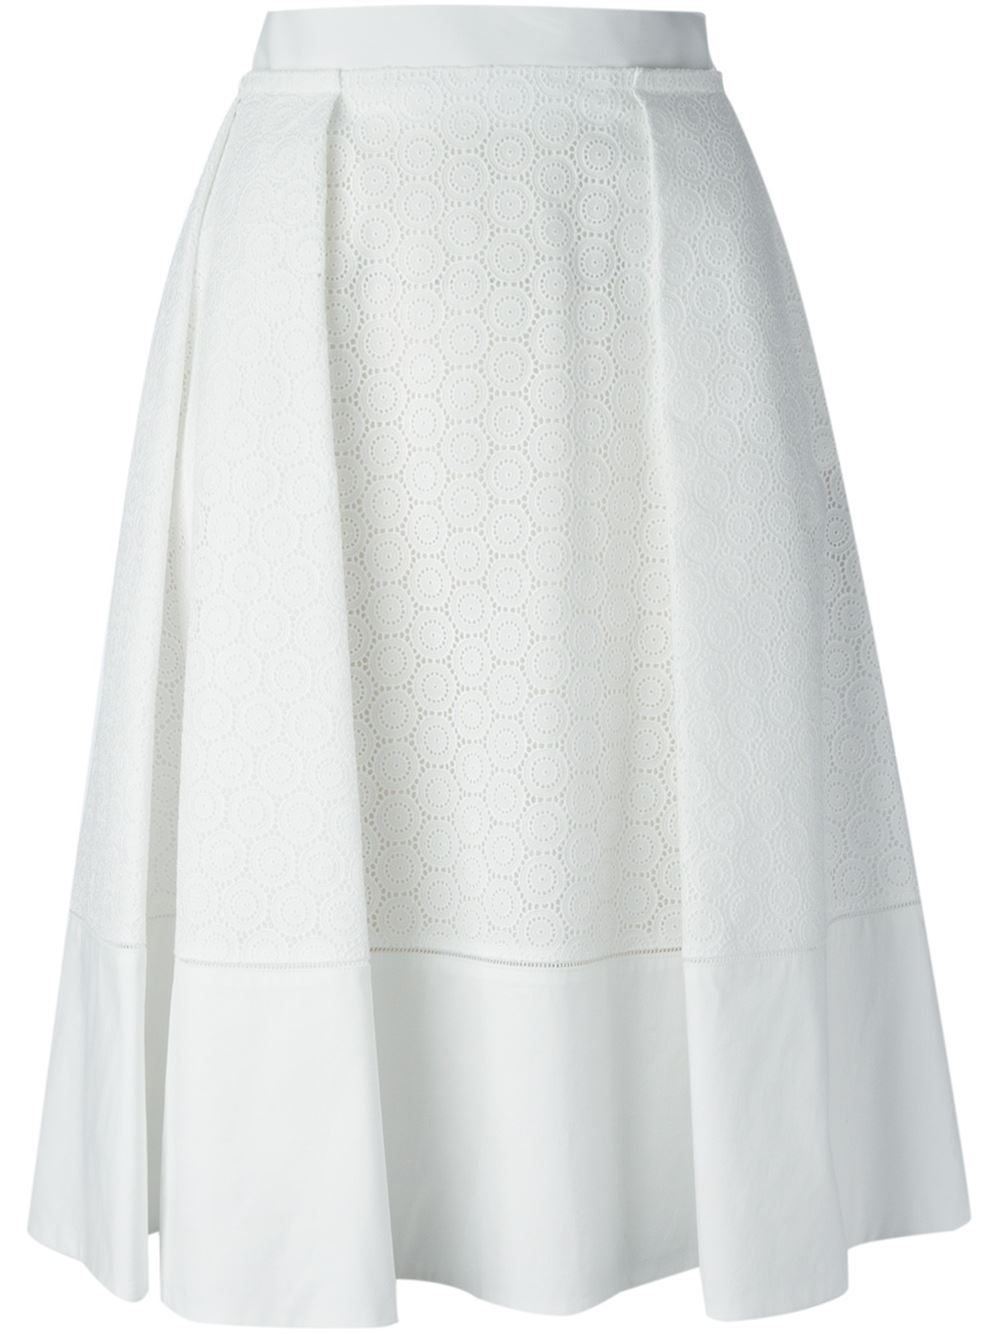 ferragamo perforated a line skirt in white lyst